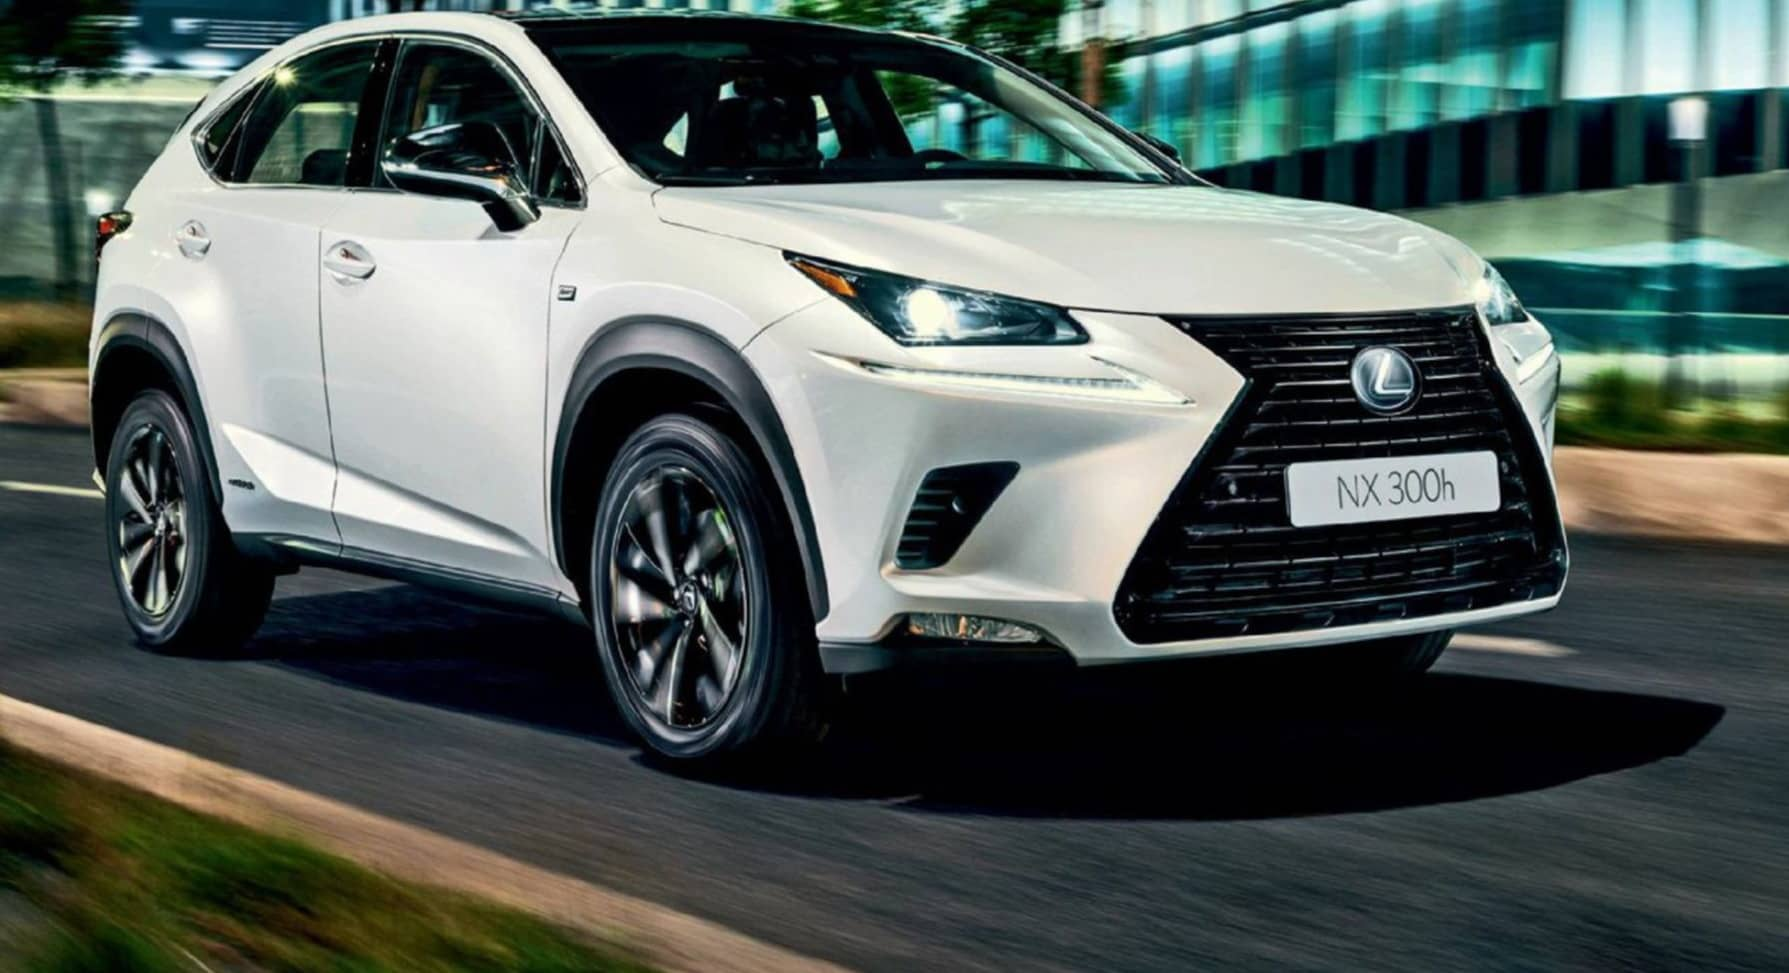 Lexus NX 300H Business Full Drive - Sostenible Y Mas Accesible